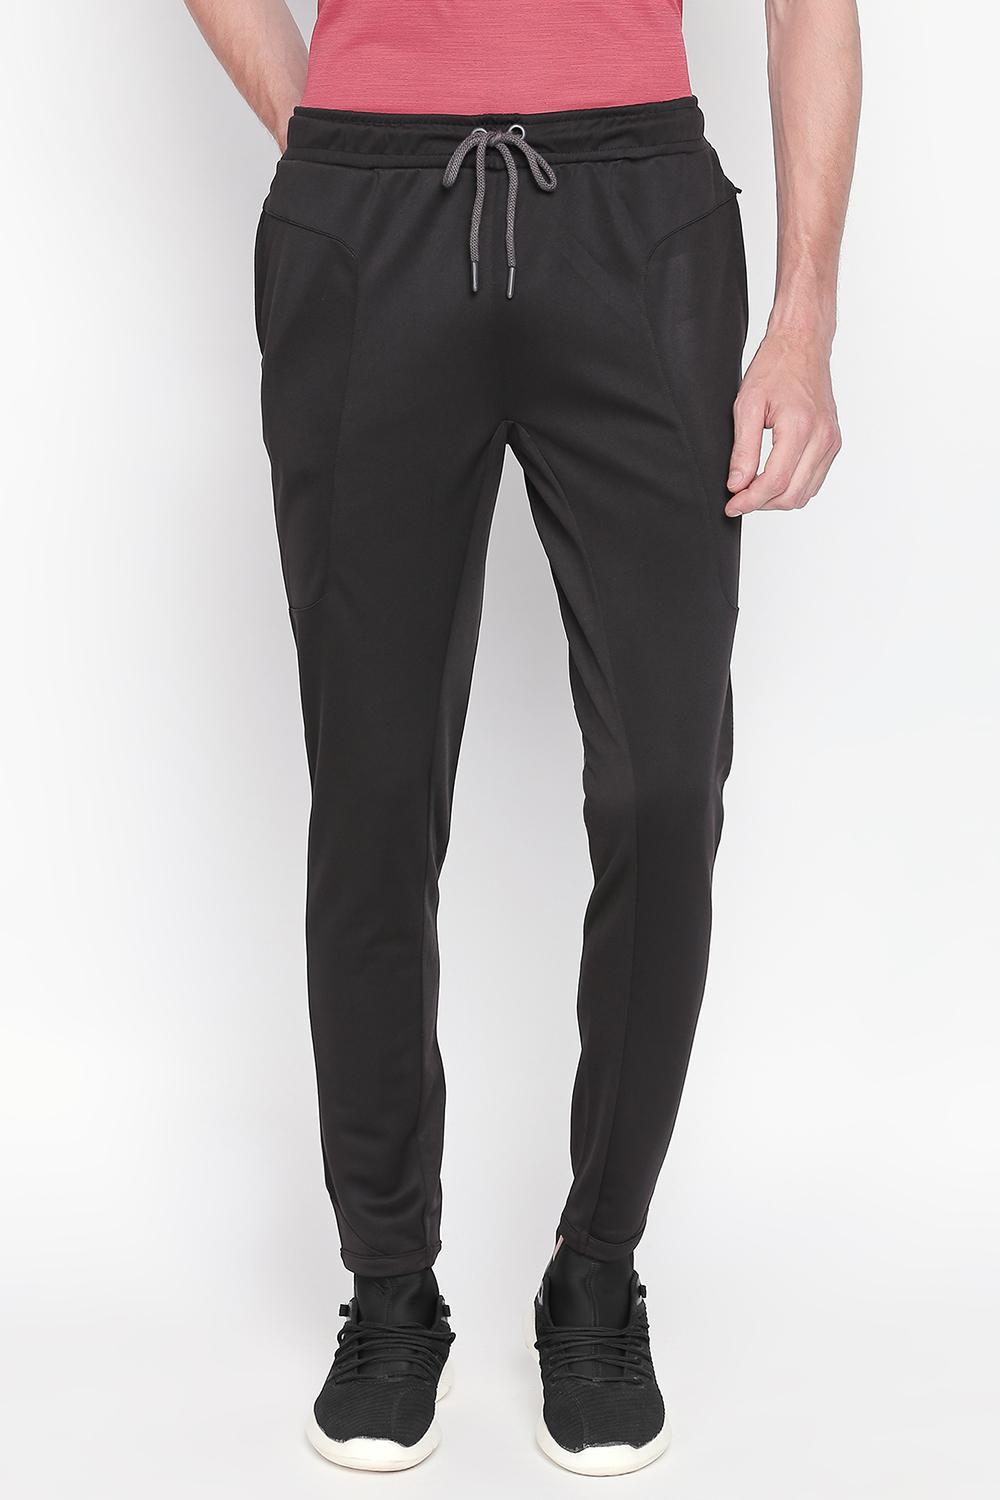 7d136041db Buy Men Activewear Online in India - Track Pants, Sports and Gym ...